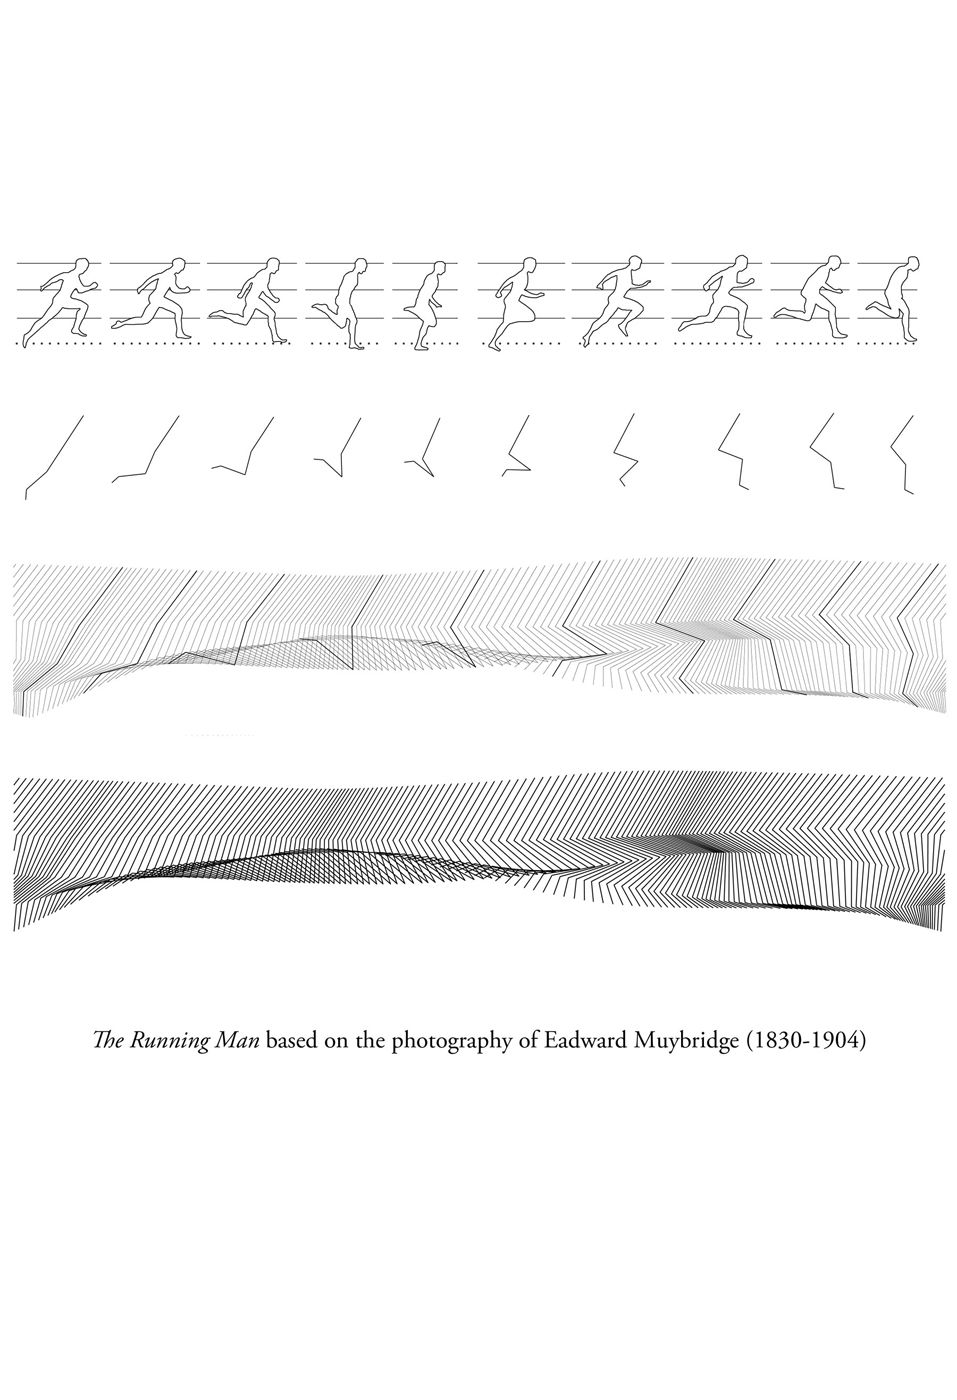 The facade patterning drew upon one of Eadward Muybridge's 19th Century photographic investigations into human movement, the Running Man.  Piercy&Company abstracted Muybridge's stop action photographs into a pattern that ripples across the building's facade, conveying a sense of motion and movement.